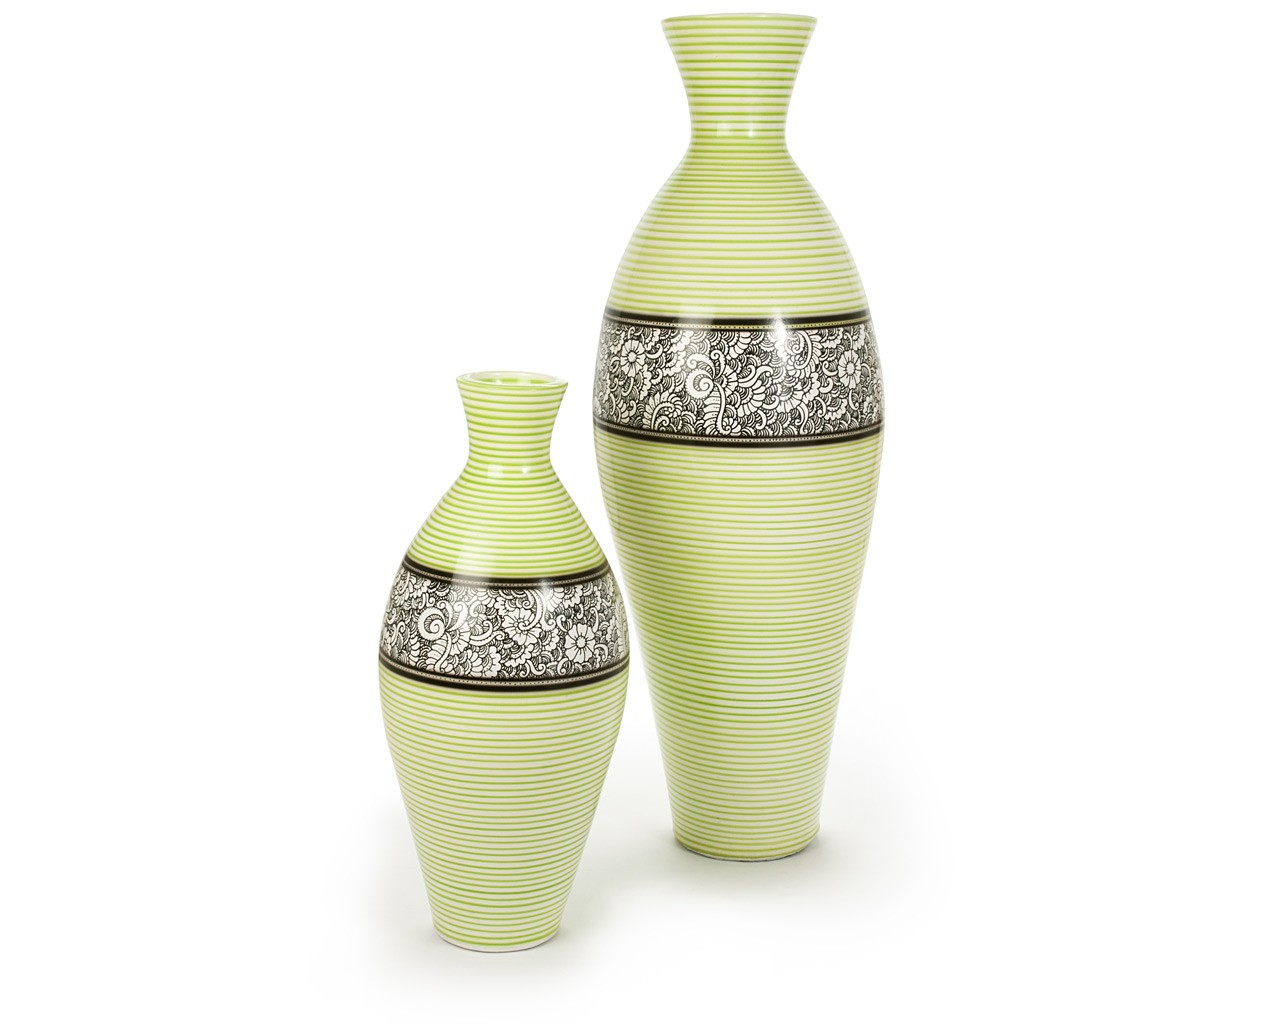 Floor Vase | Decorative Glass Vases | Terracotta Floor Vase